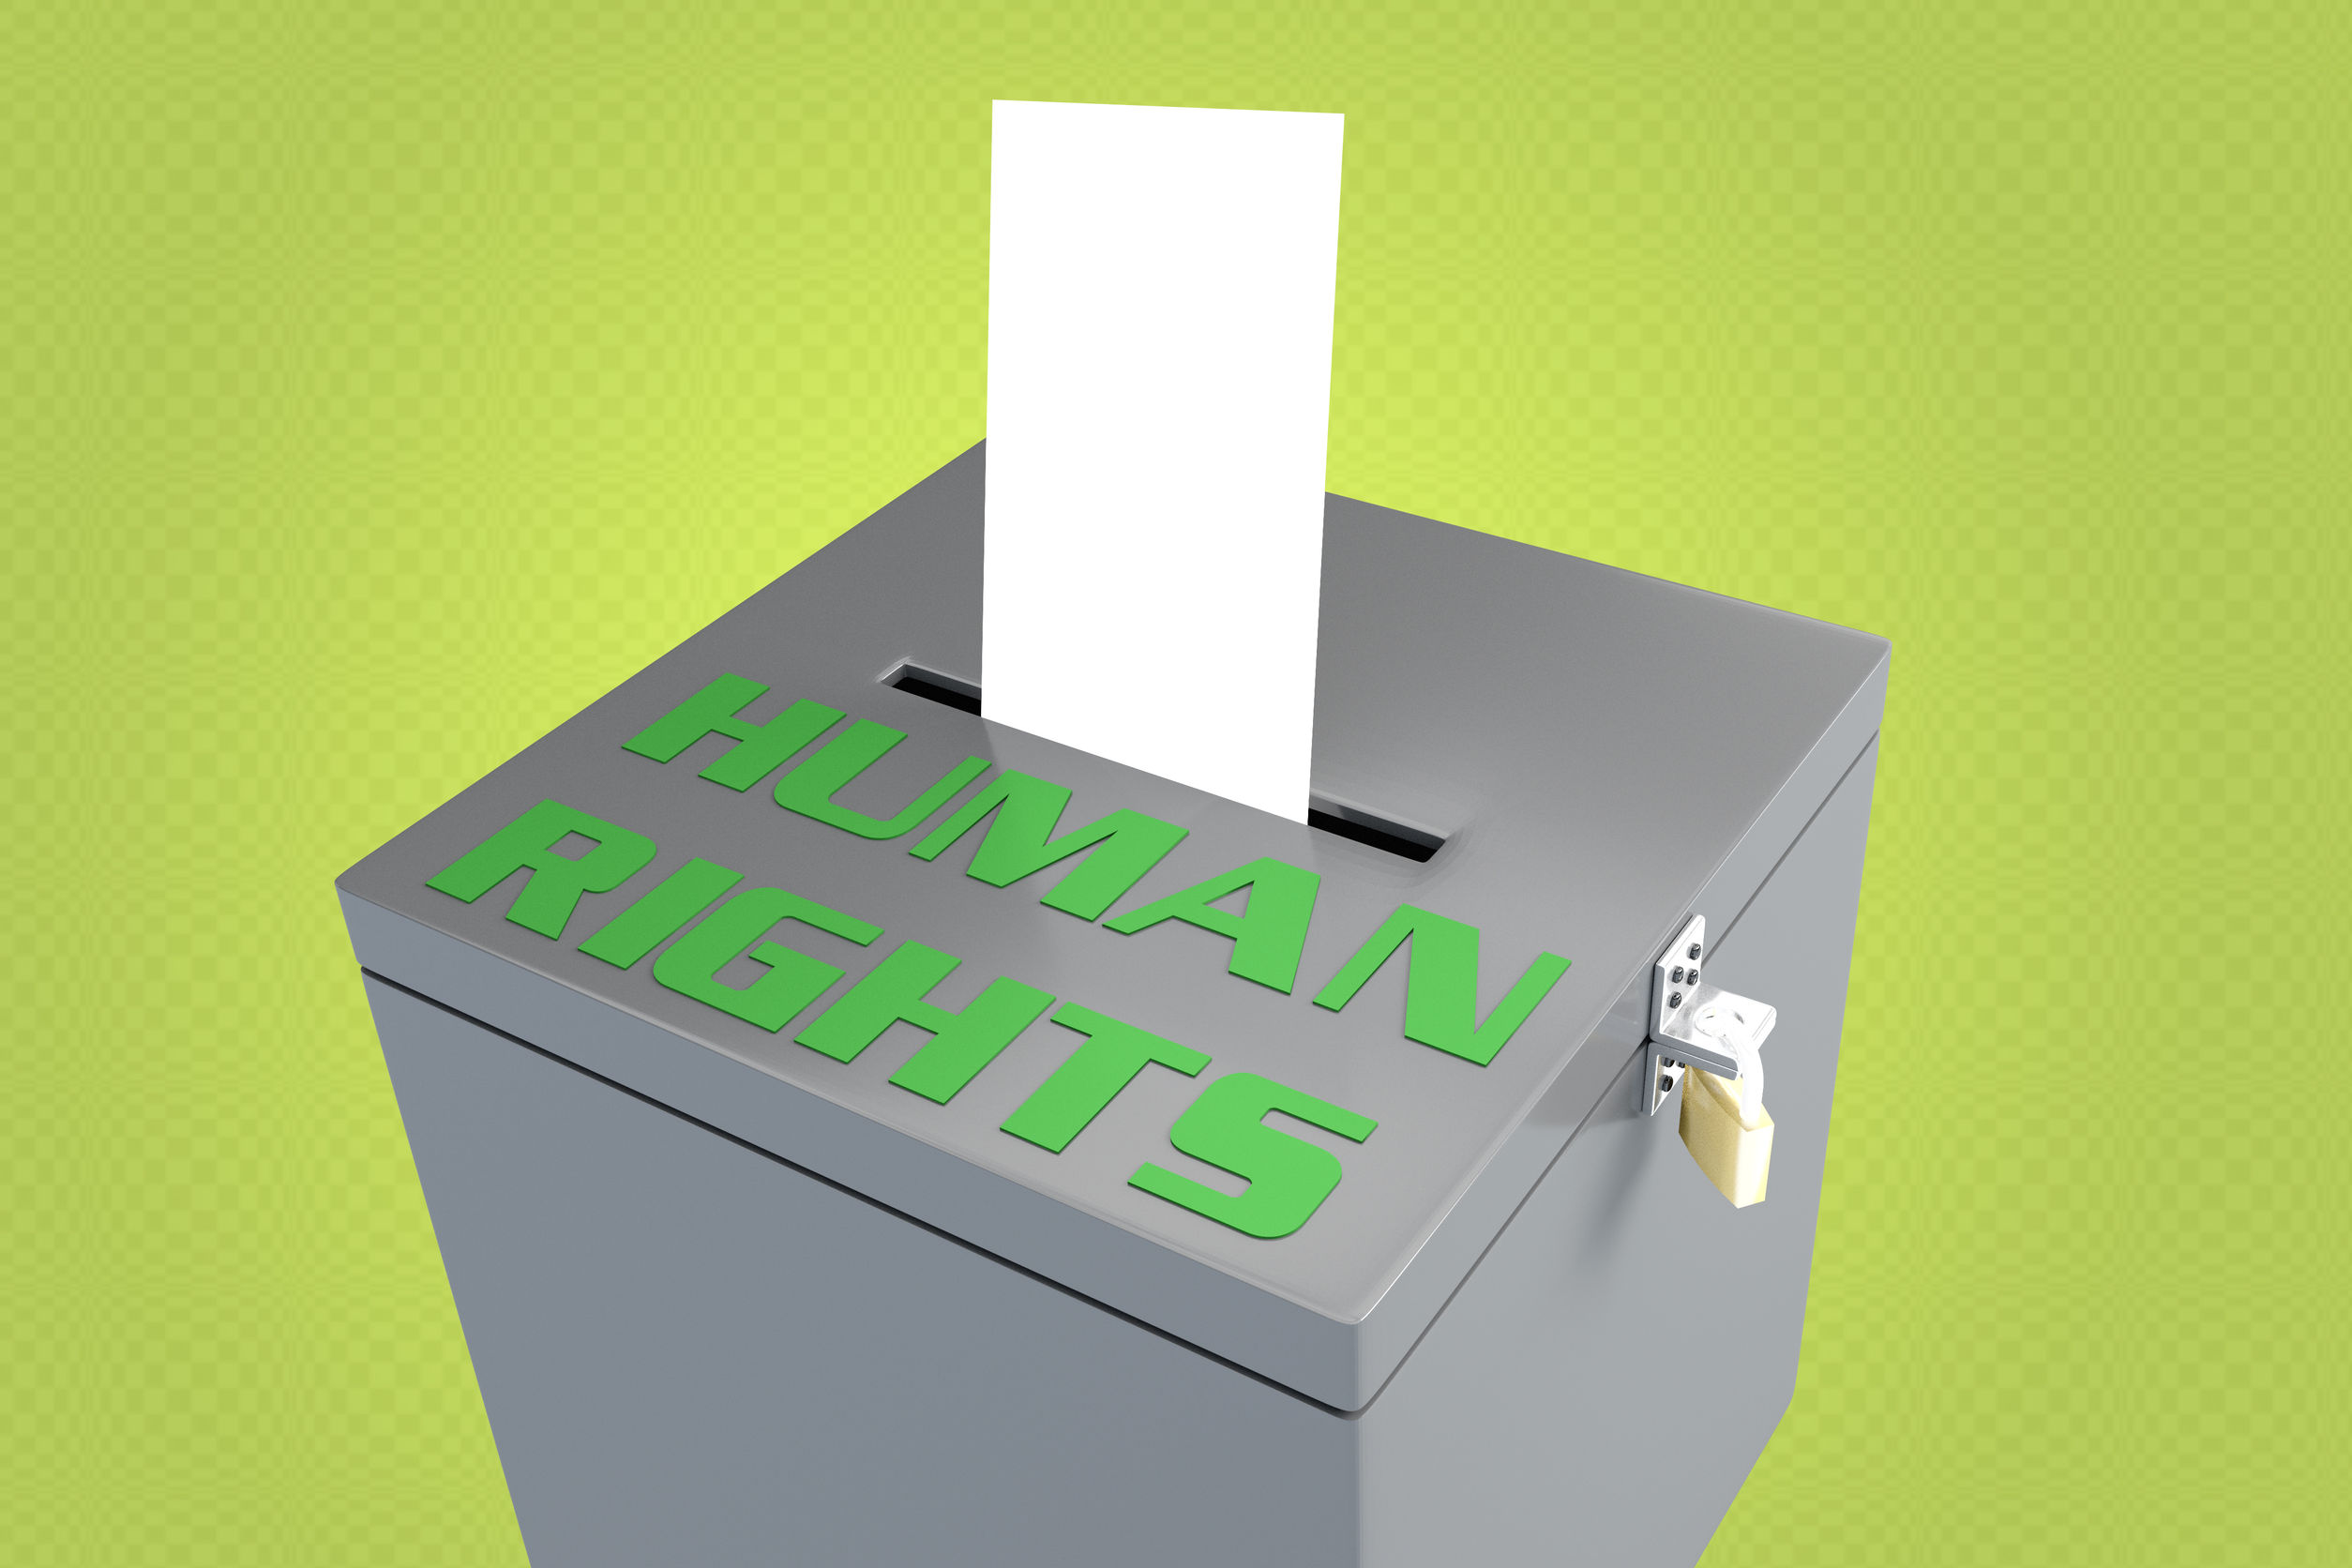 SOME PEOPLE AREN'T ALLOWED TO VOTE. IS IT LEGAL?